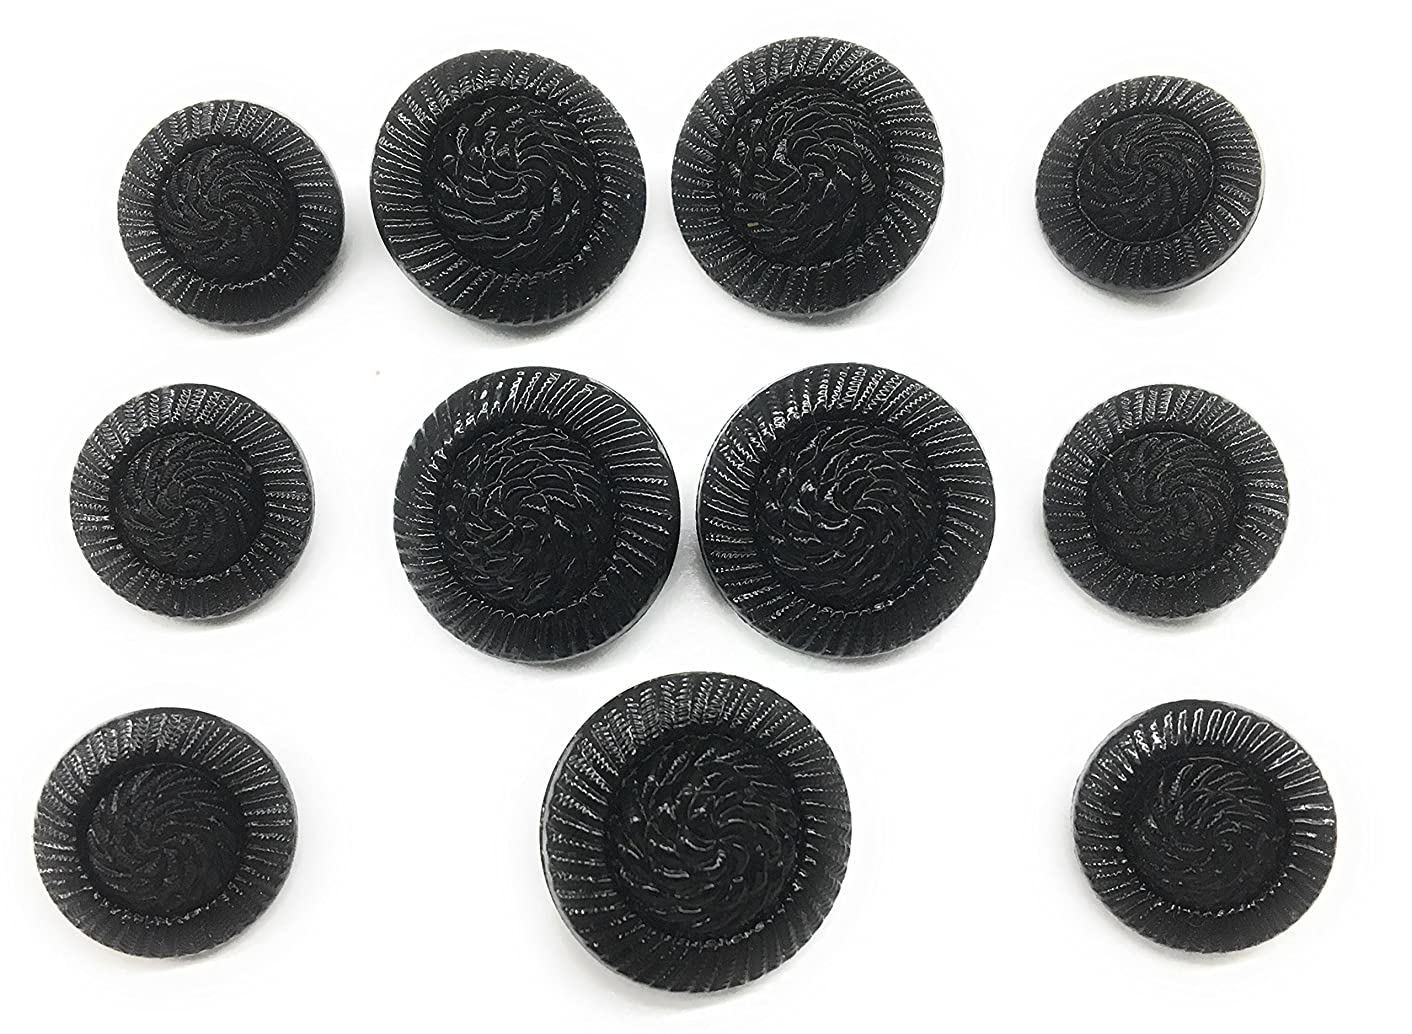 Jet BLACK Button Glass Cord Design BUTTON Set for Dress and Suits 11pc.